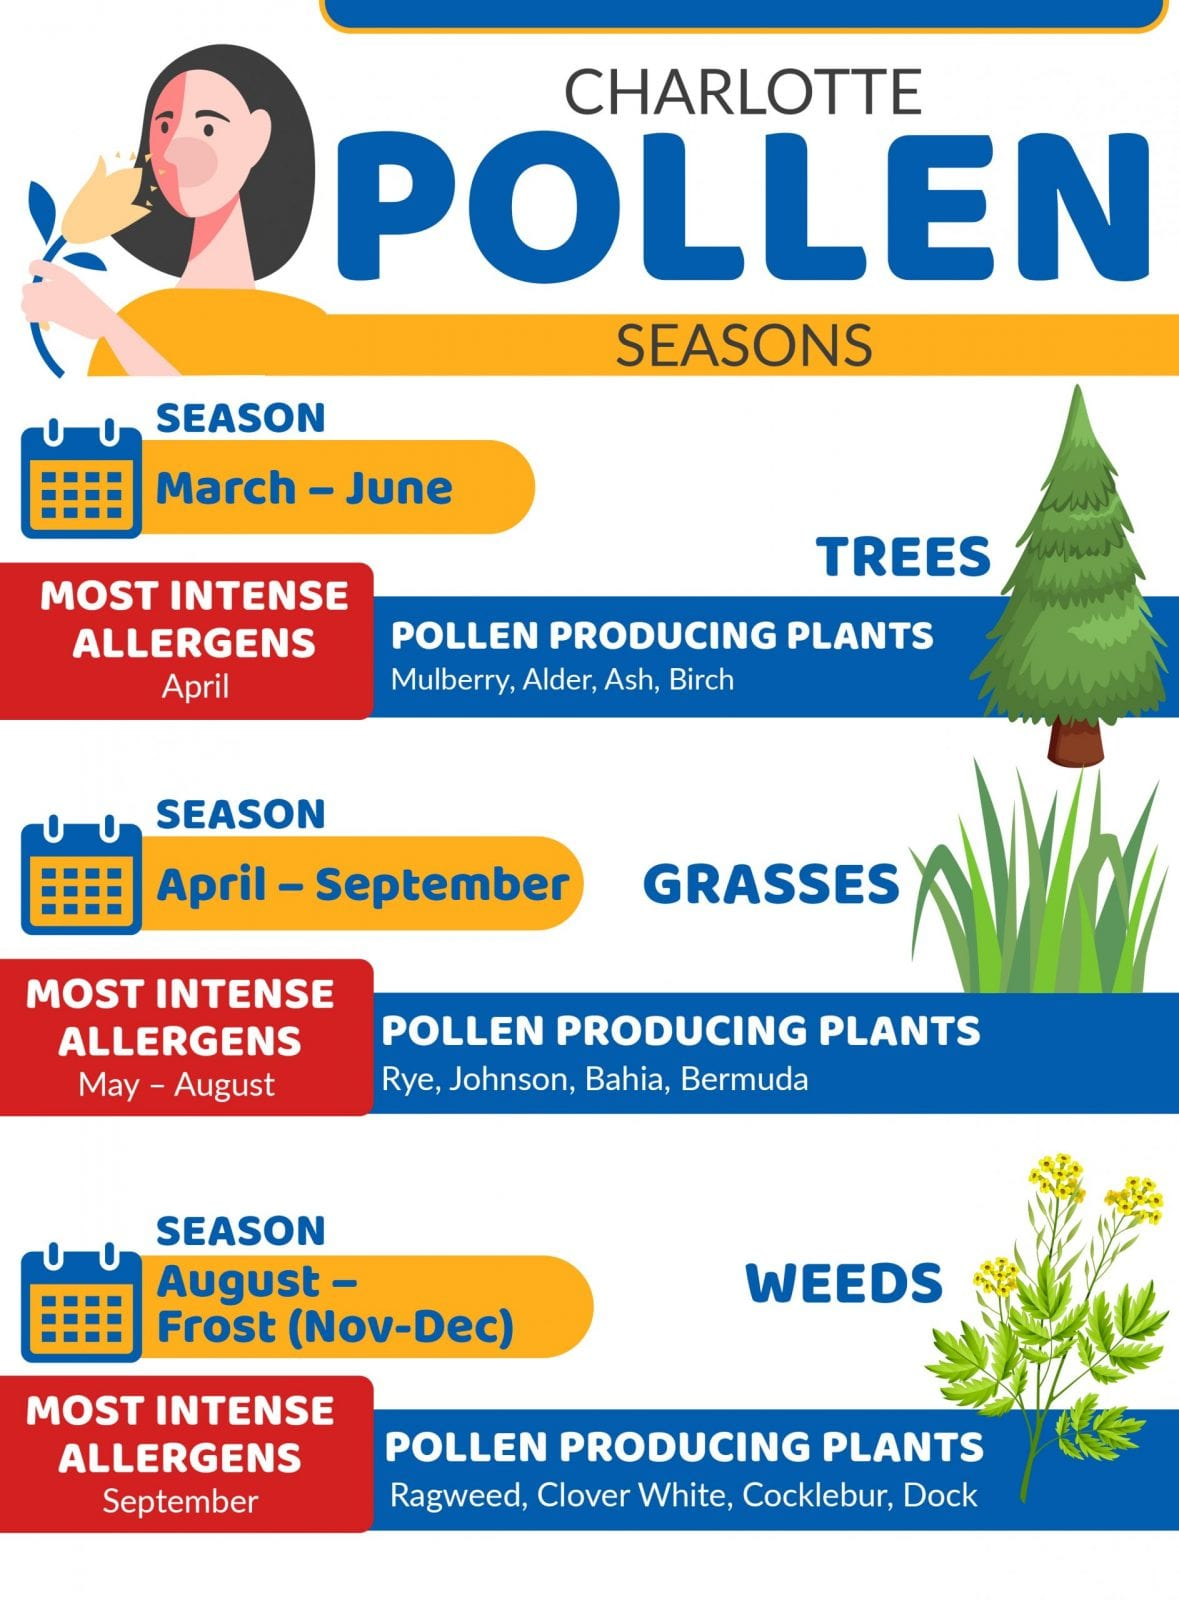 Charlotte's pollen season starts in spring and goes through the first frost.